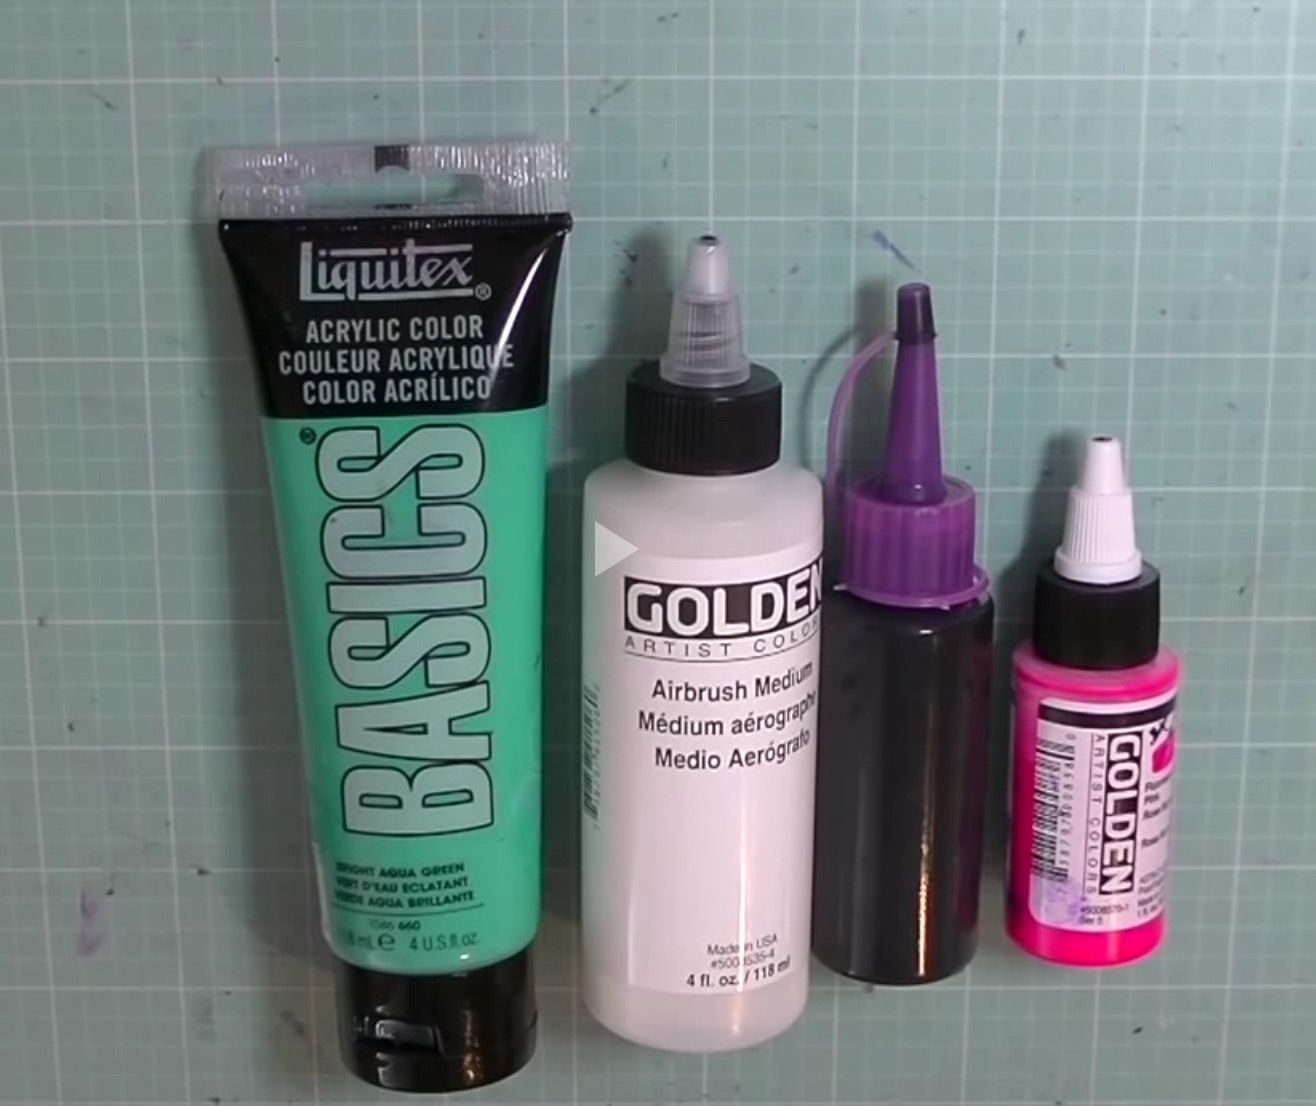 Does Acrylic Craft Paint Work In An Airbrush